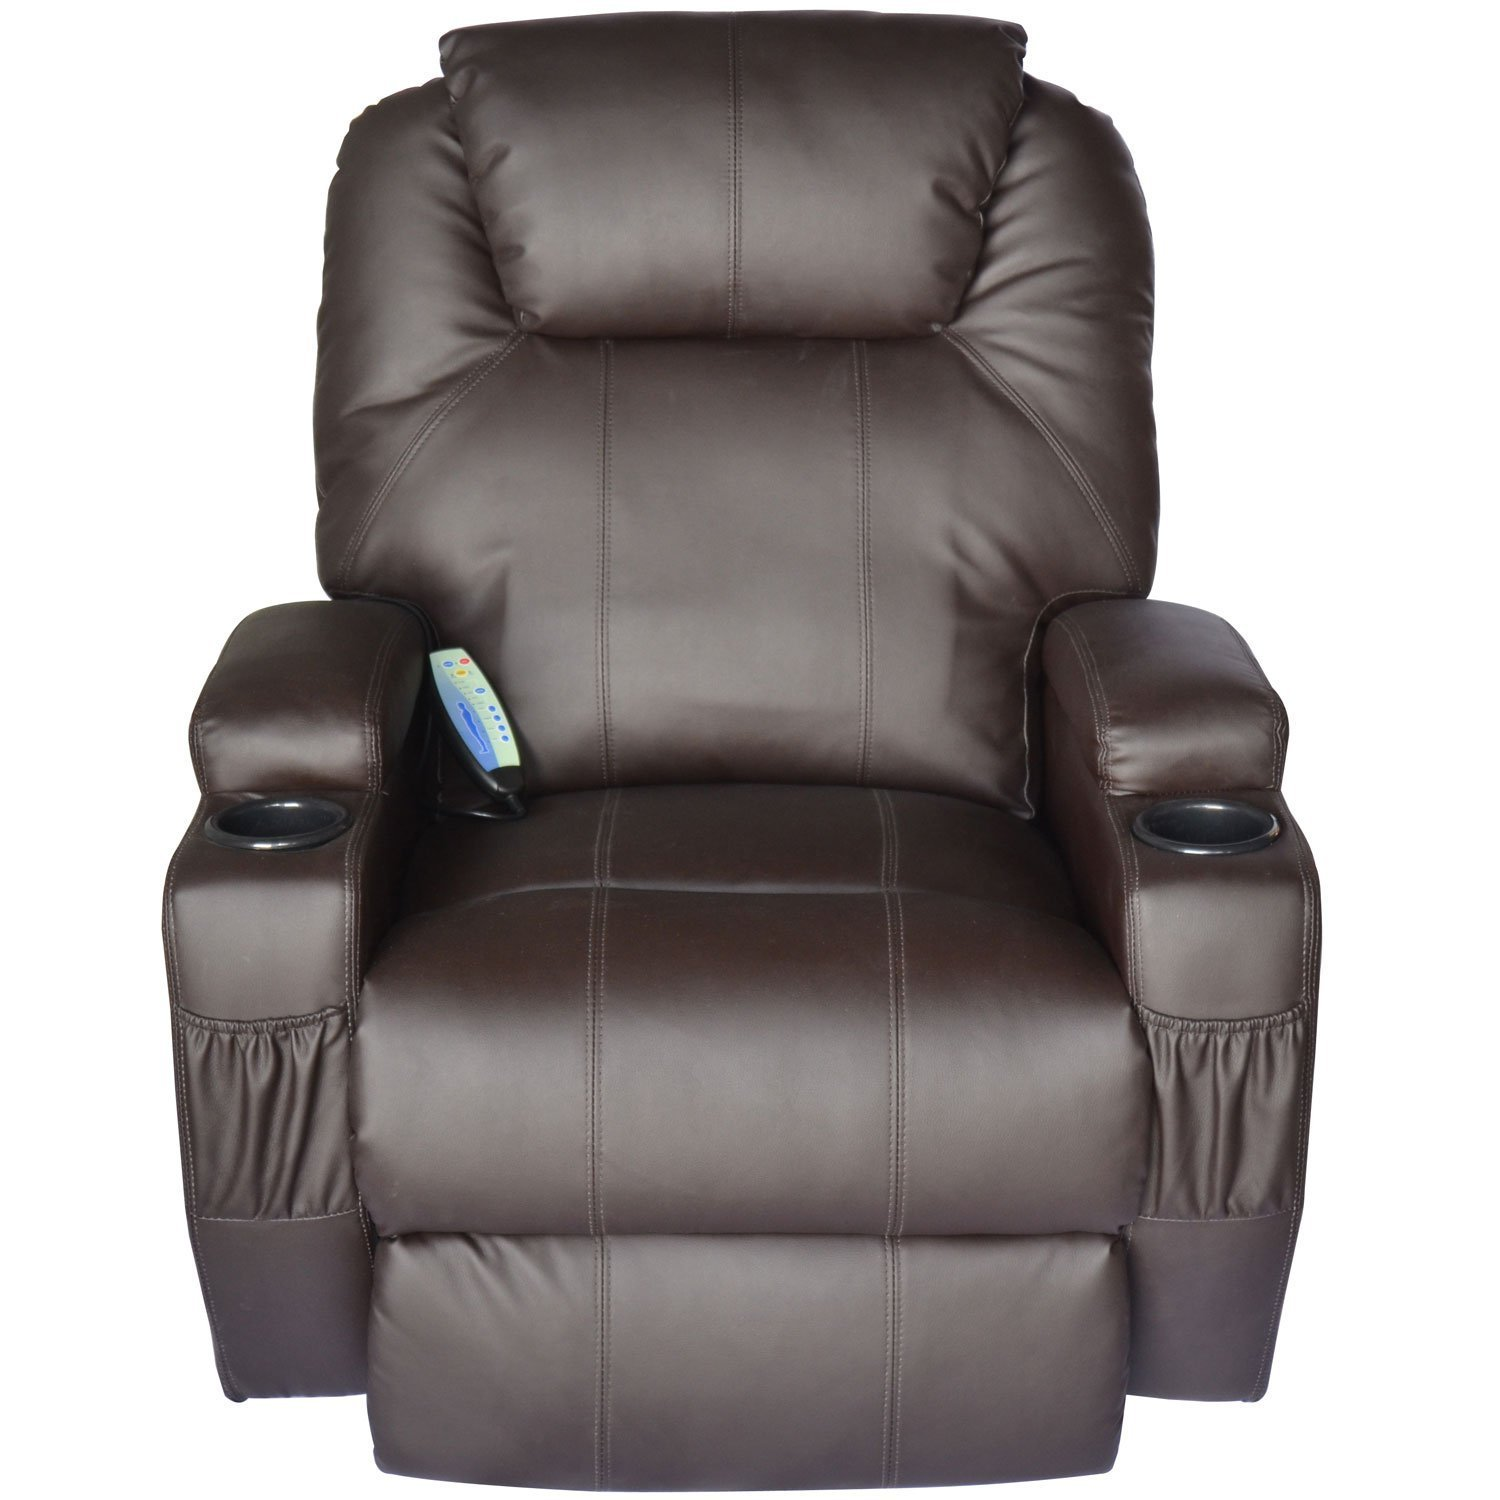 Amazon.com: HomCom Heating Vibrating PU Leather Massage Recliner Chair    Brown: Kitchen U0026 Dining